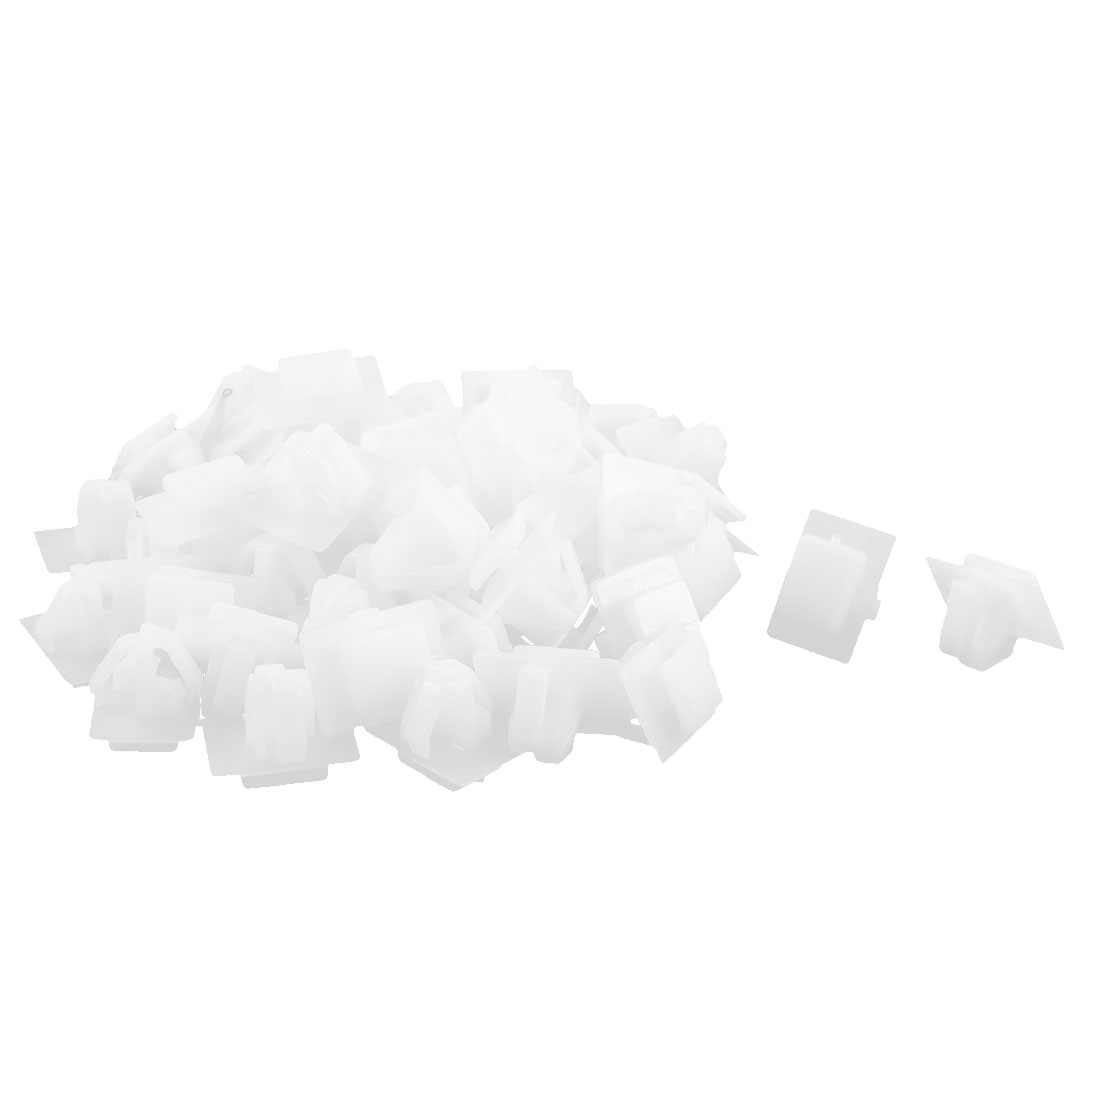 50Pcs White Car Dashboard Splash Guard Plastic Retainer Clip for Hyundai